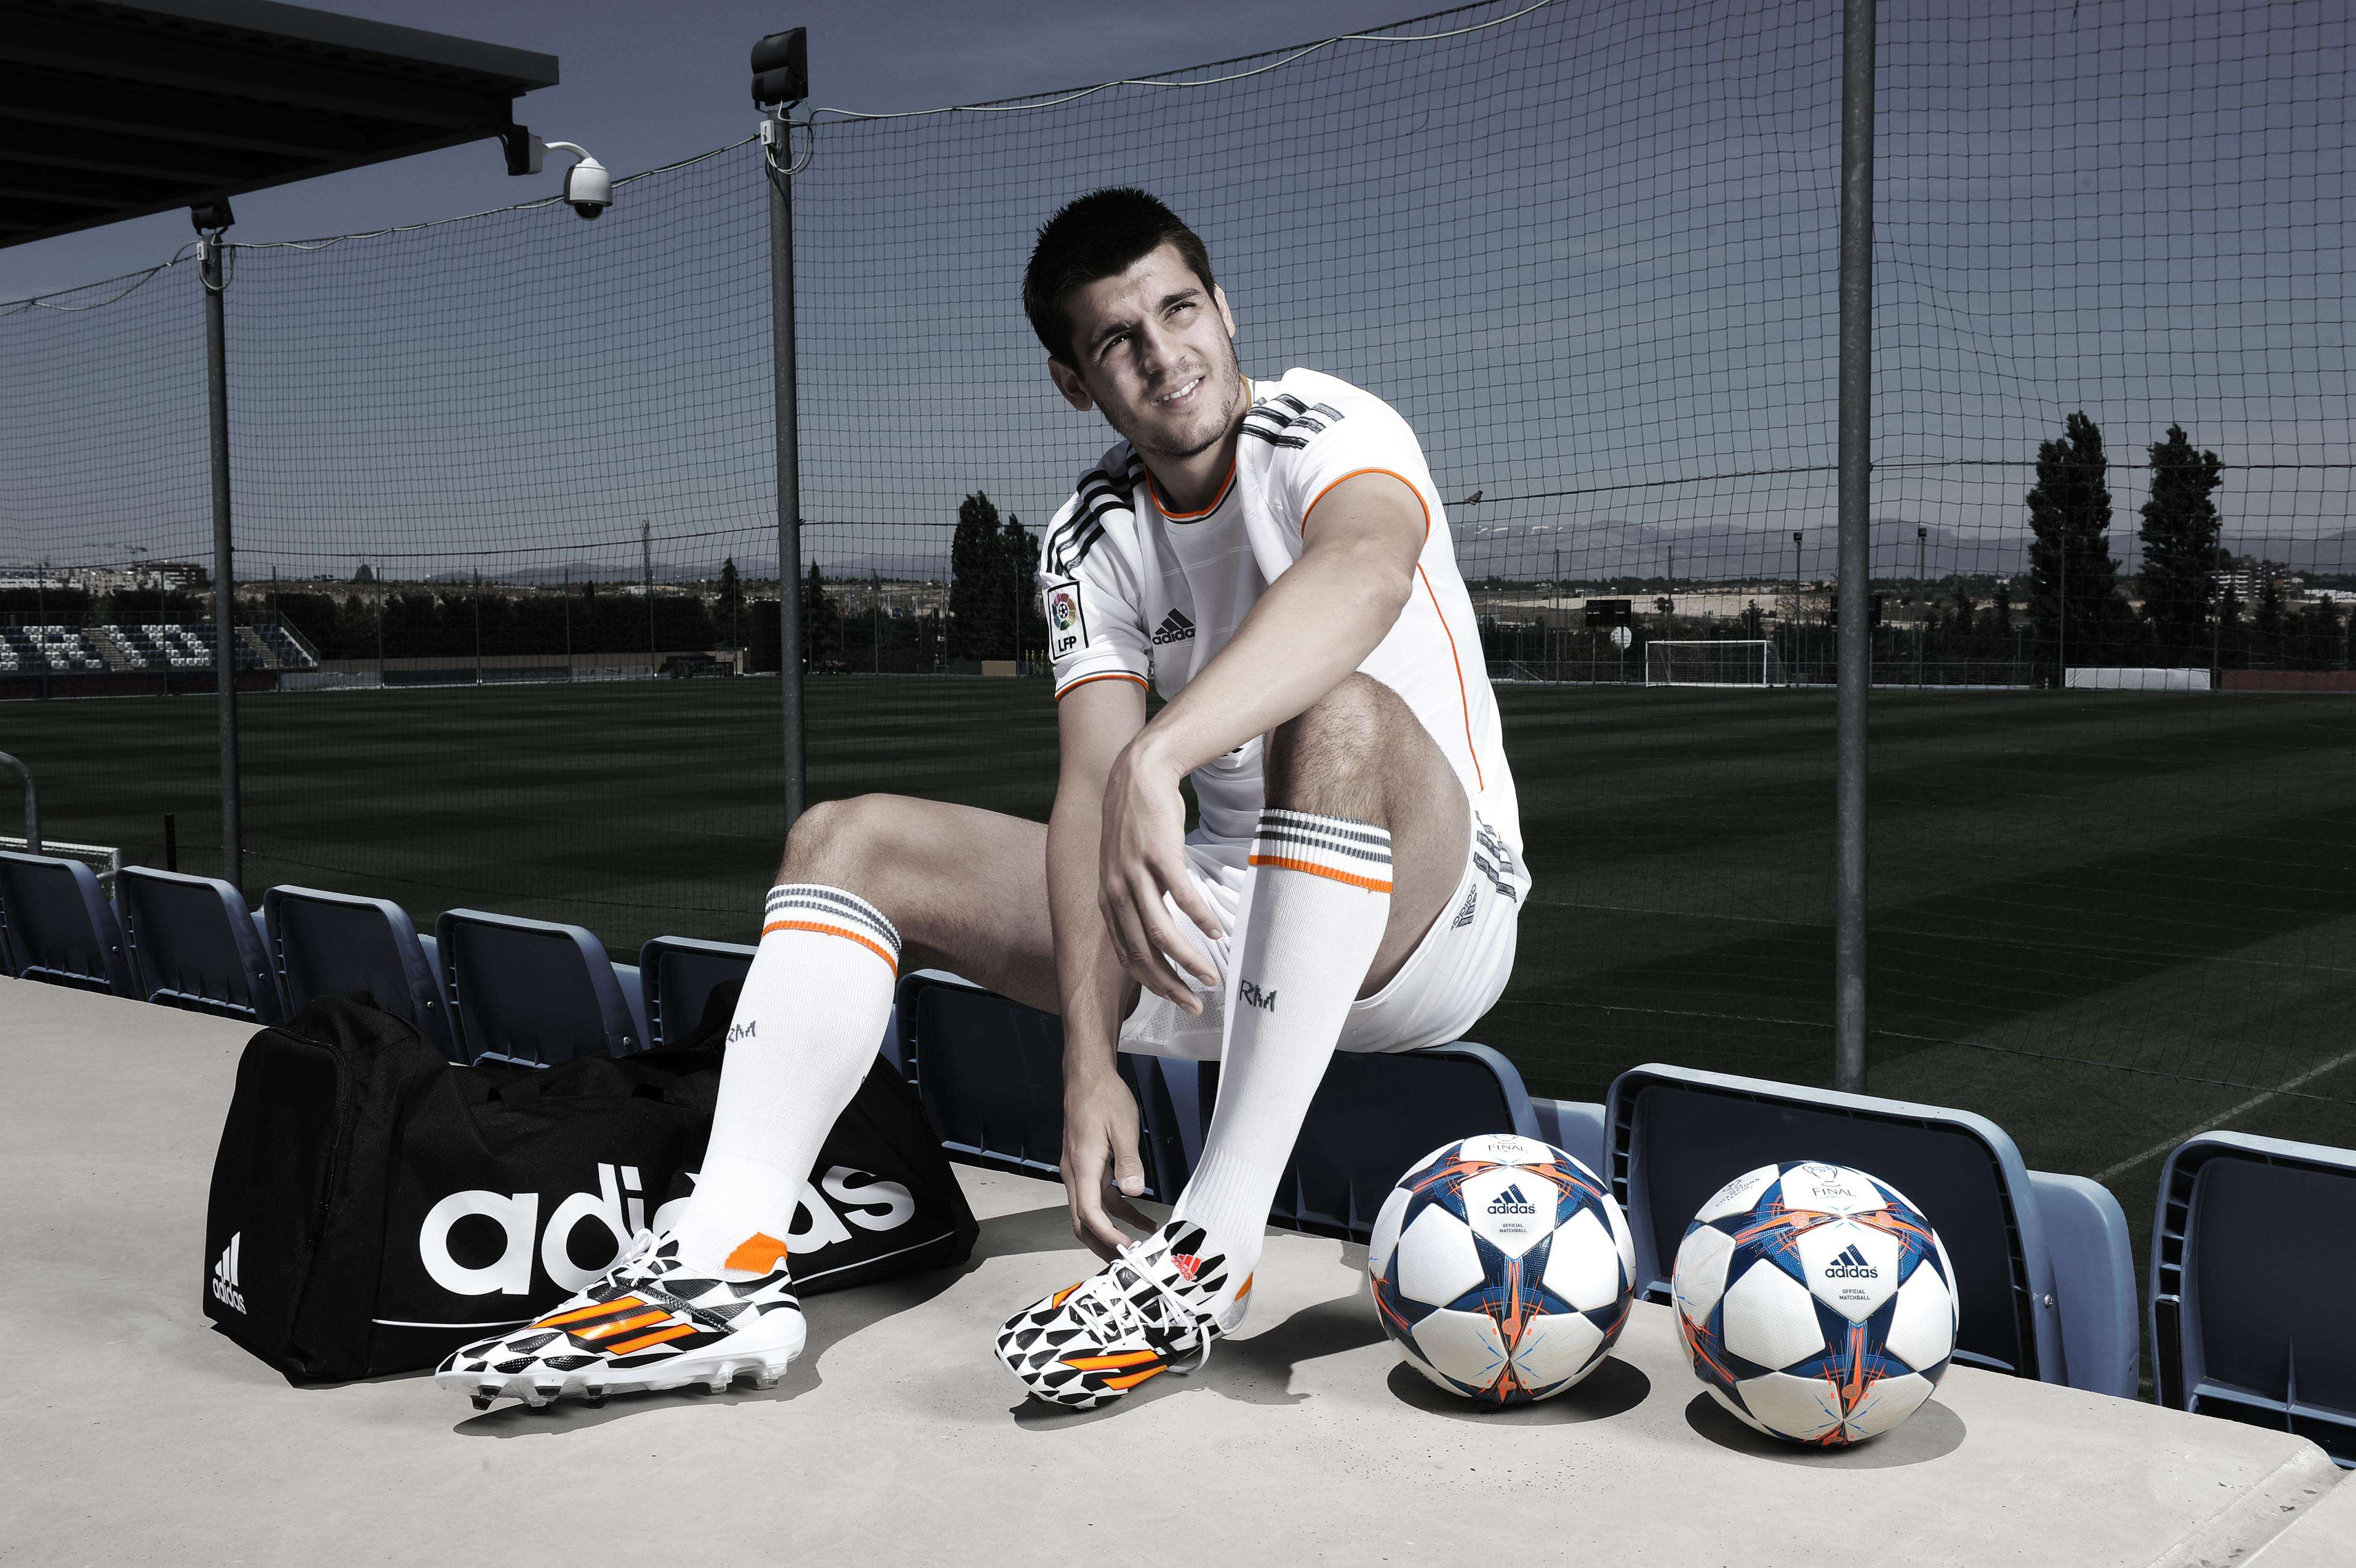 Recent Juventus acquisition Morata injures knee